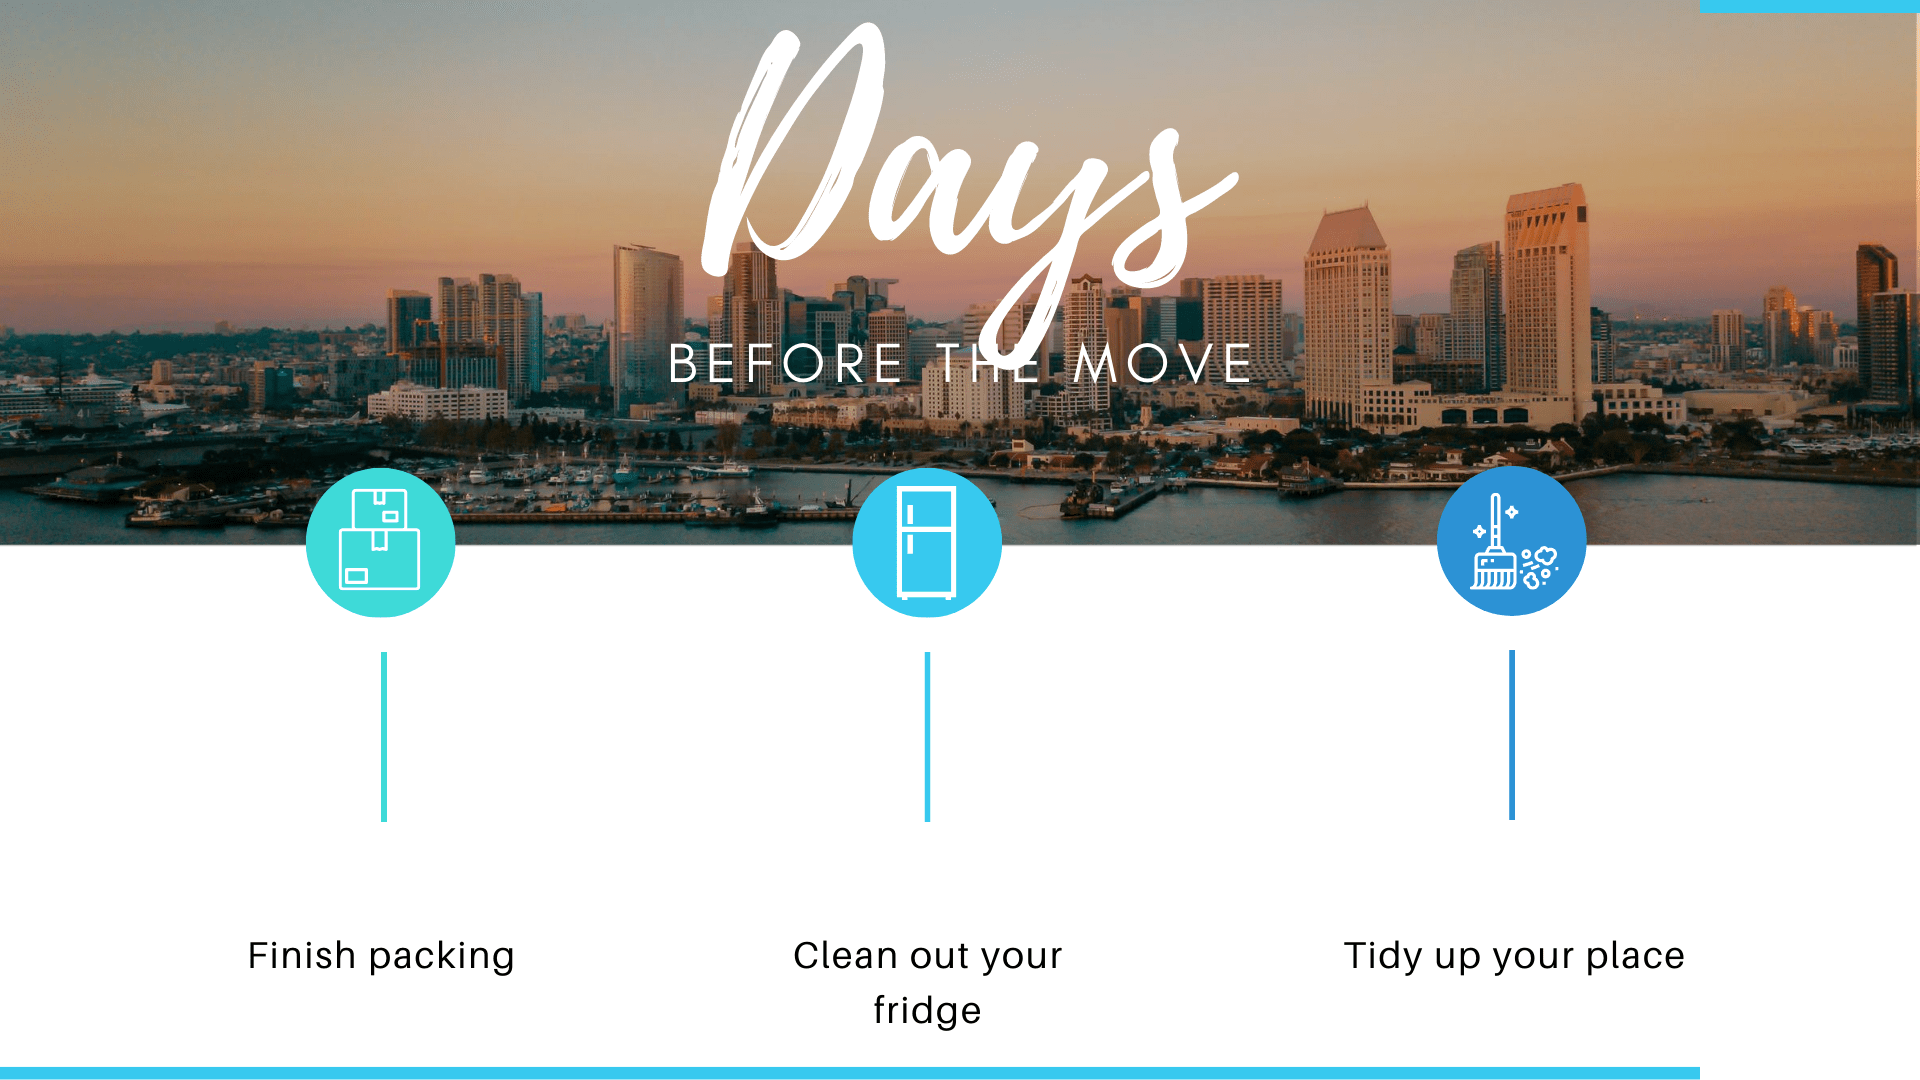 How to prepare days before your move